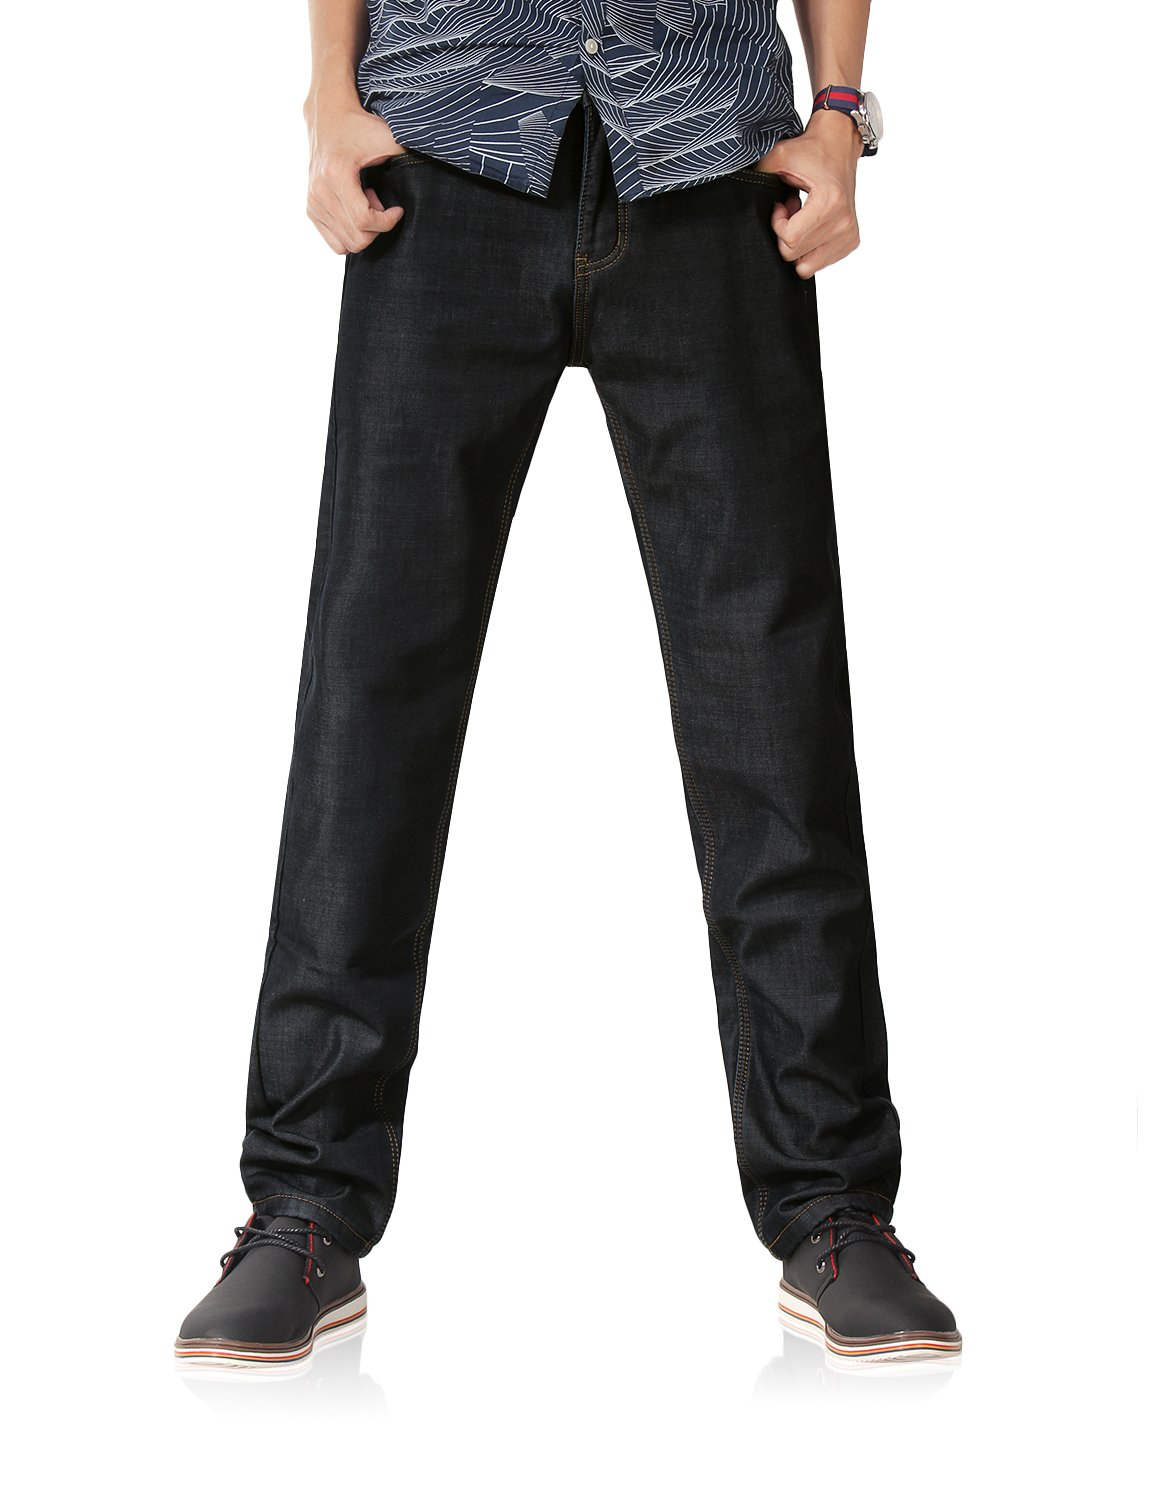 Demon hunter 801 Series Men's Fleece Lined Straight Leg Jeans DH8001(29)